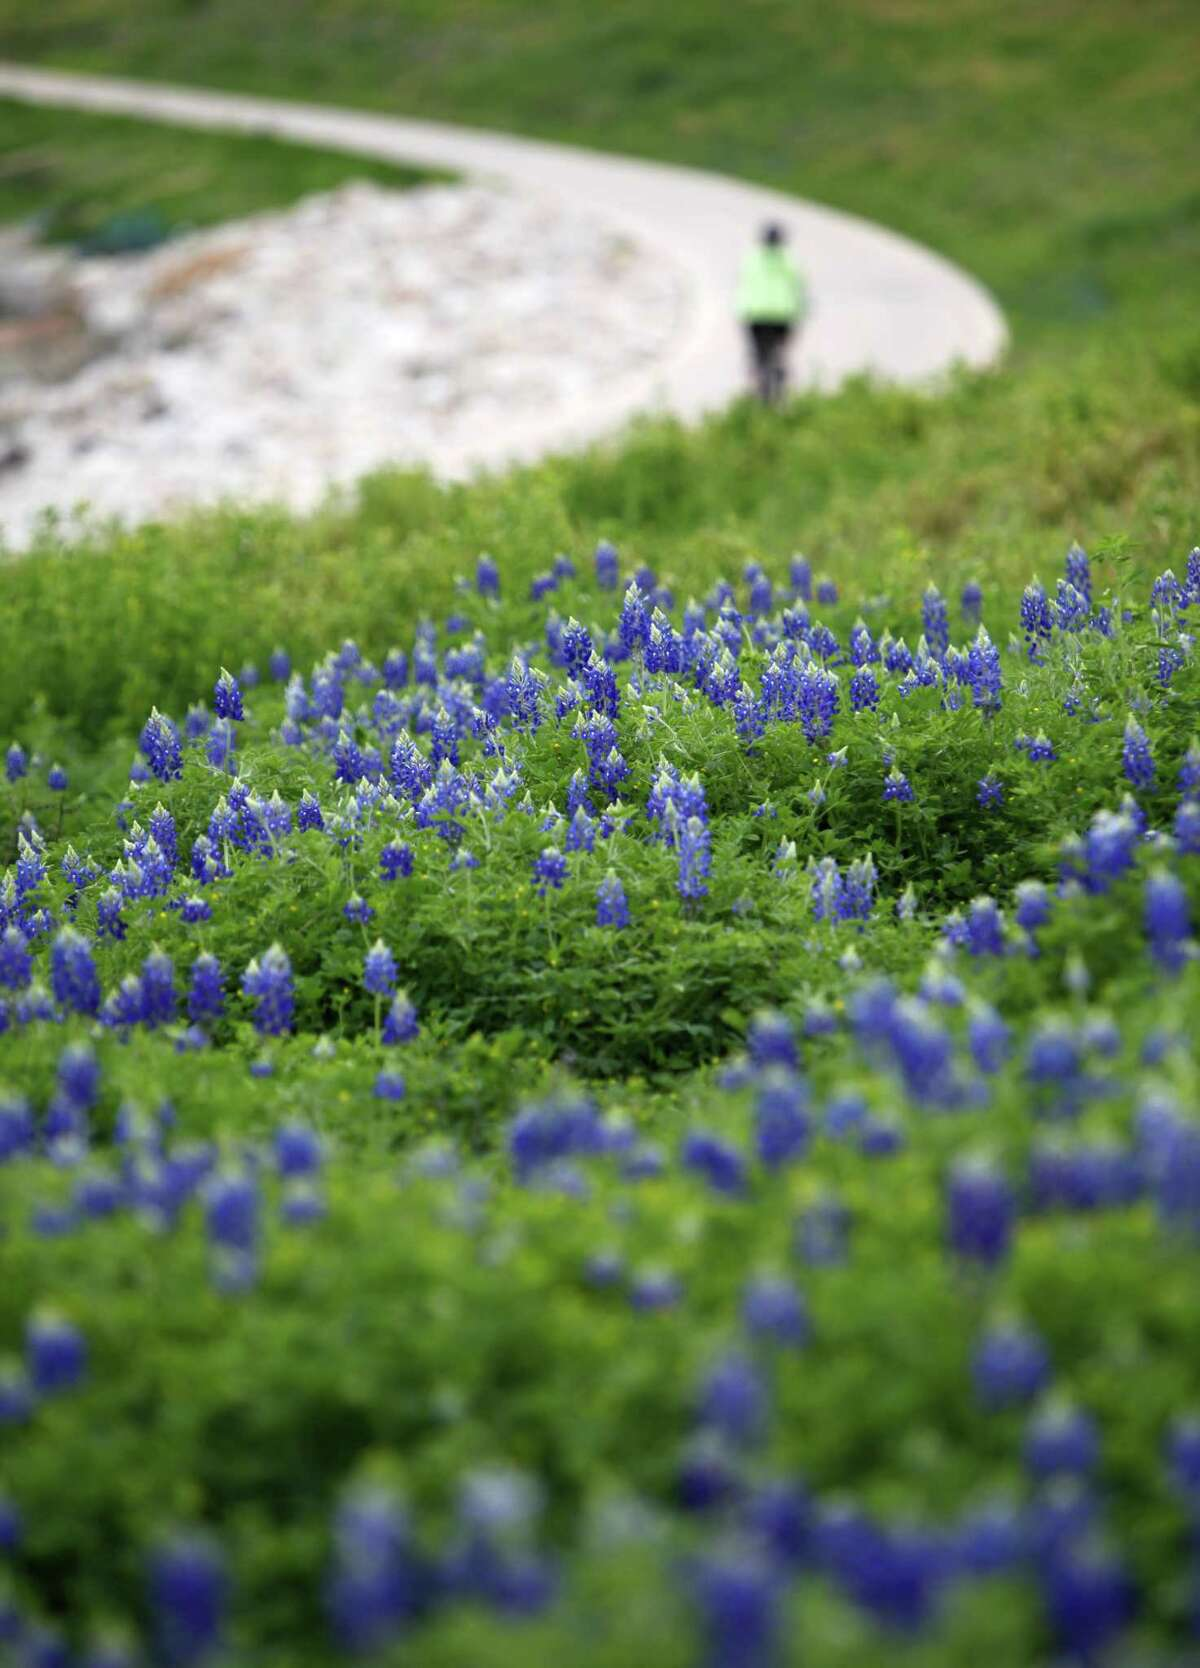 Bluebonnets are seen March 13, 2012, along the Mission Reach portion of the San Antonio River as a cyclist rides along the path.